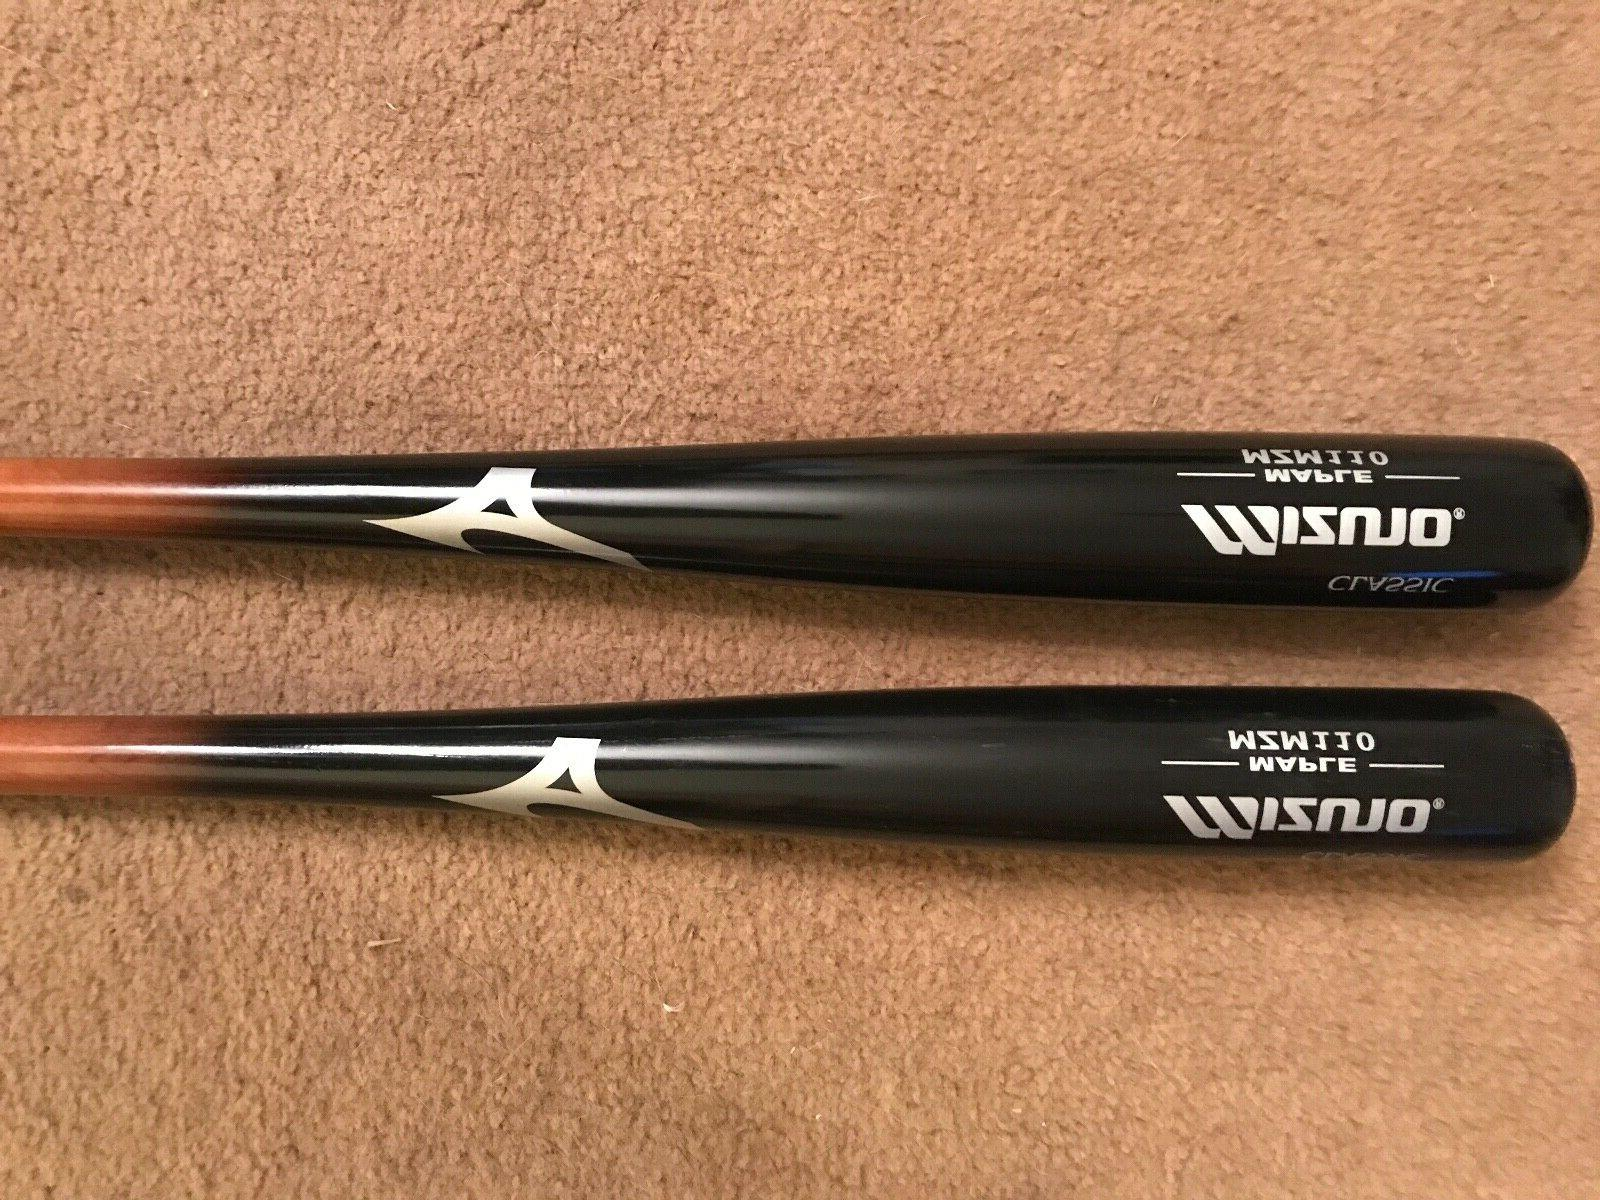 2 mzm110 maple baseball bats